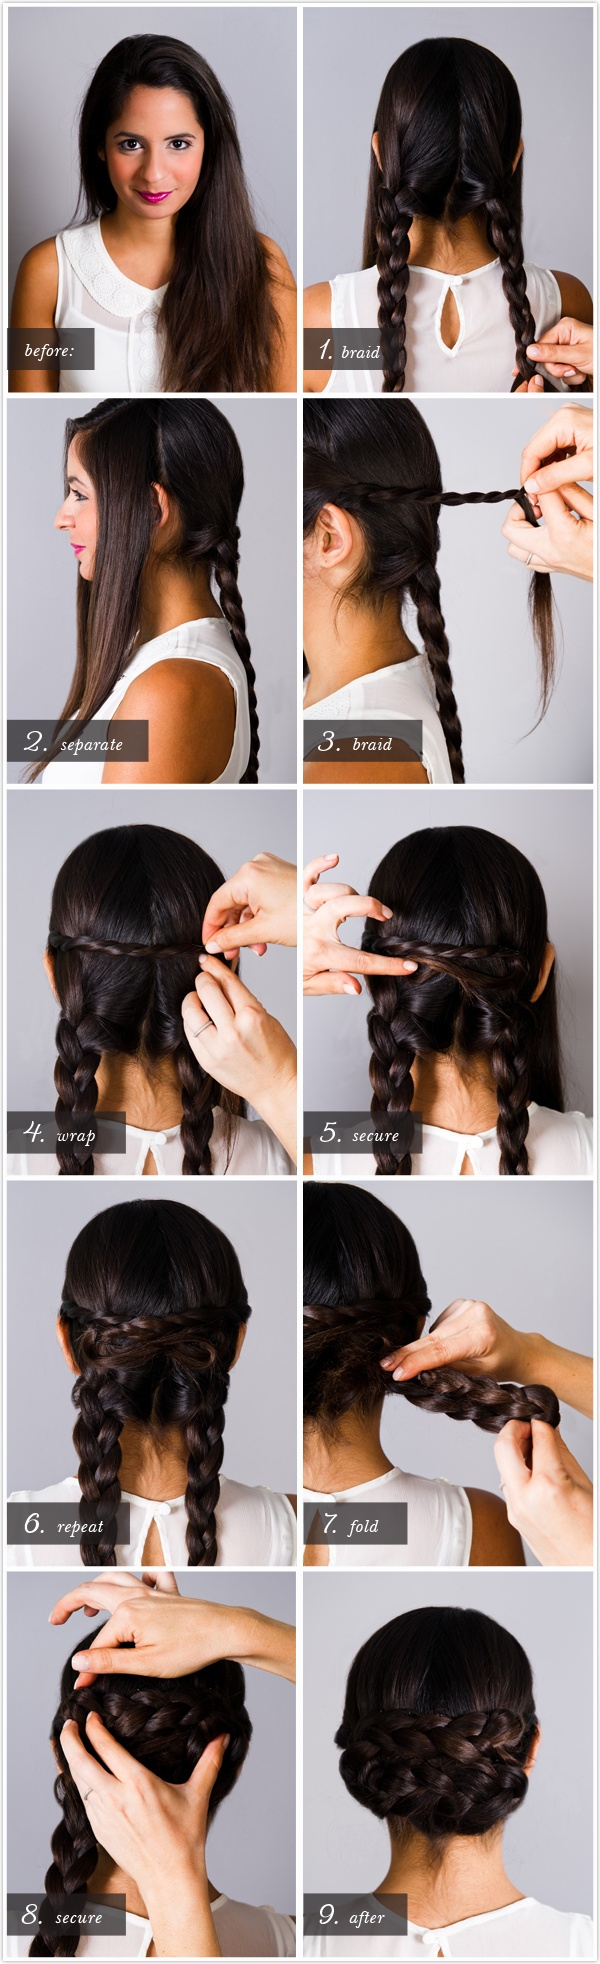 Transitioning hairstyle hair pinterest transitioning